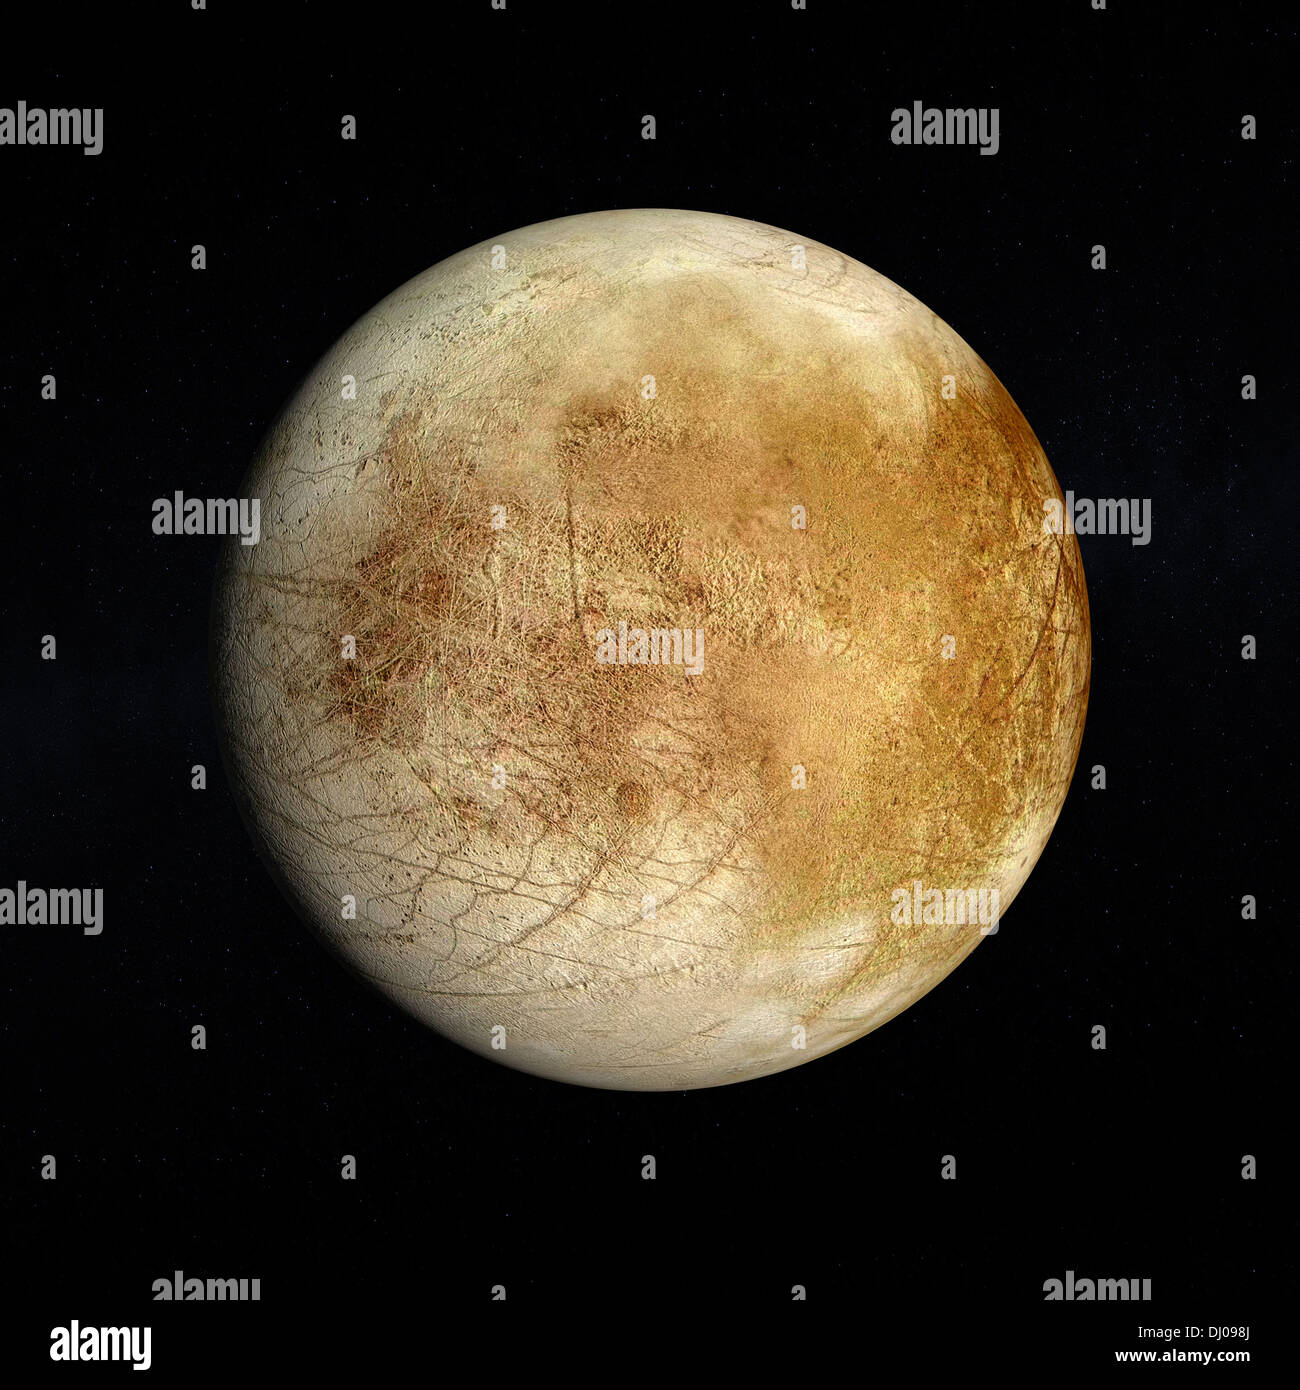 A rendered Image of the Jupiter Moon Europa on a starry background. - Stock Image